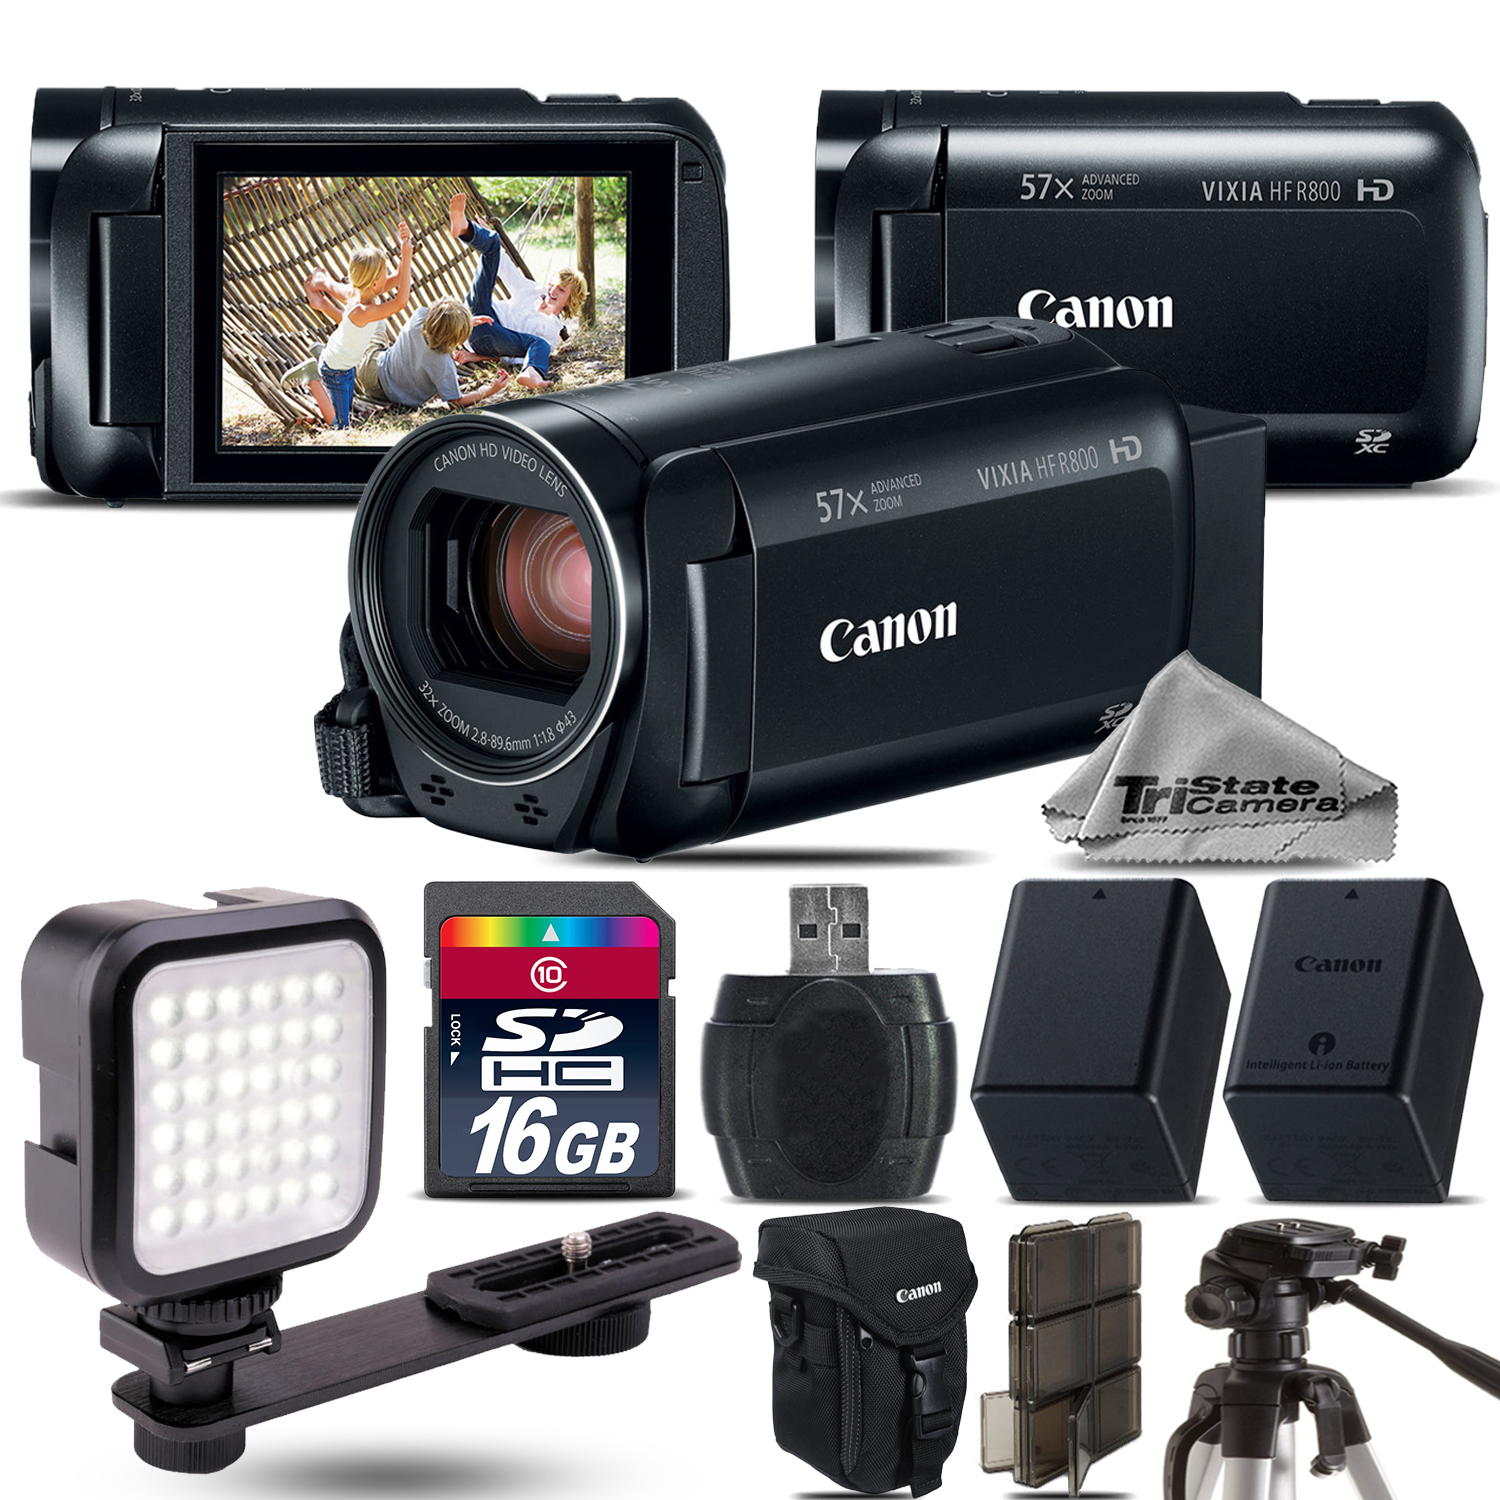 VIXIA HF R 800 57x Zoom 3.28MP Camcorder + LED + EXT BATT - 16GB Bundle *FREE SHIPPING*